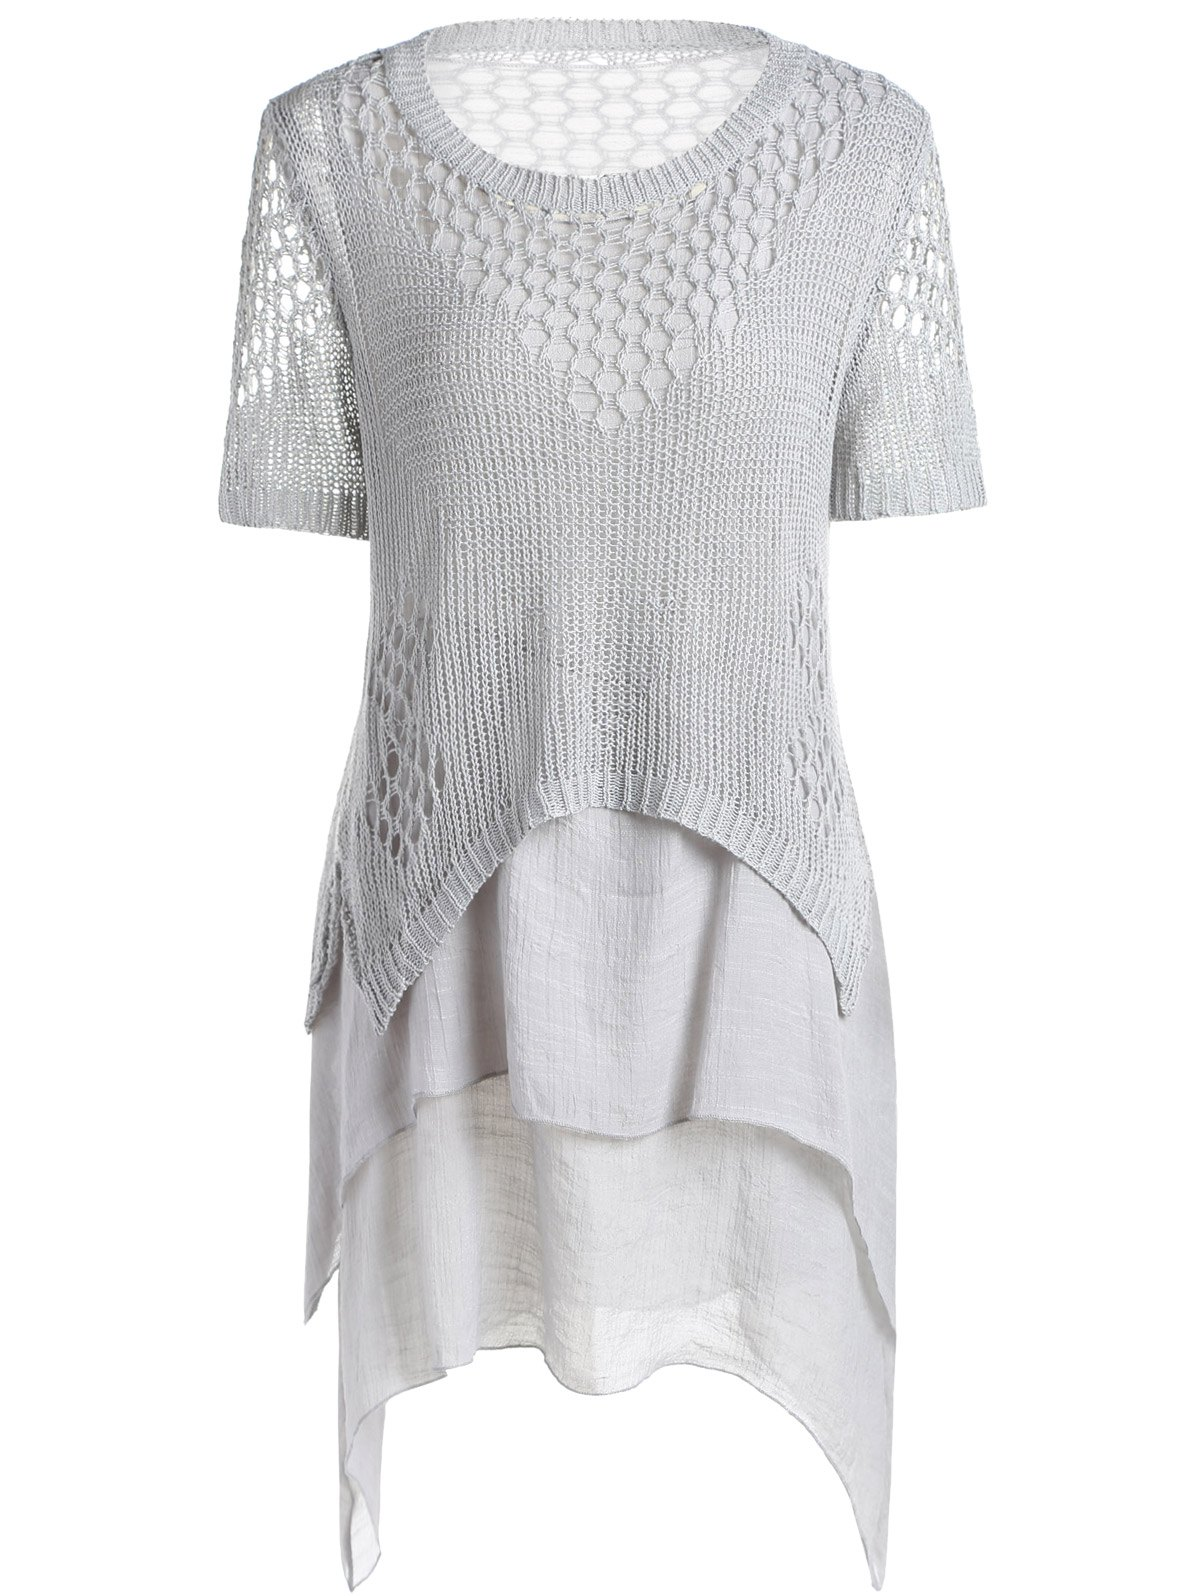 Trendy Women's Crochting Hollow Out Sweater + High Low Summer Dress Twinset - GRAY ONE SIZE(FIT SIZE XS TO M)